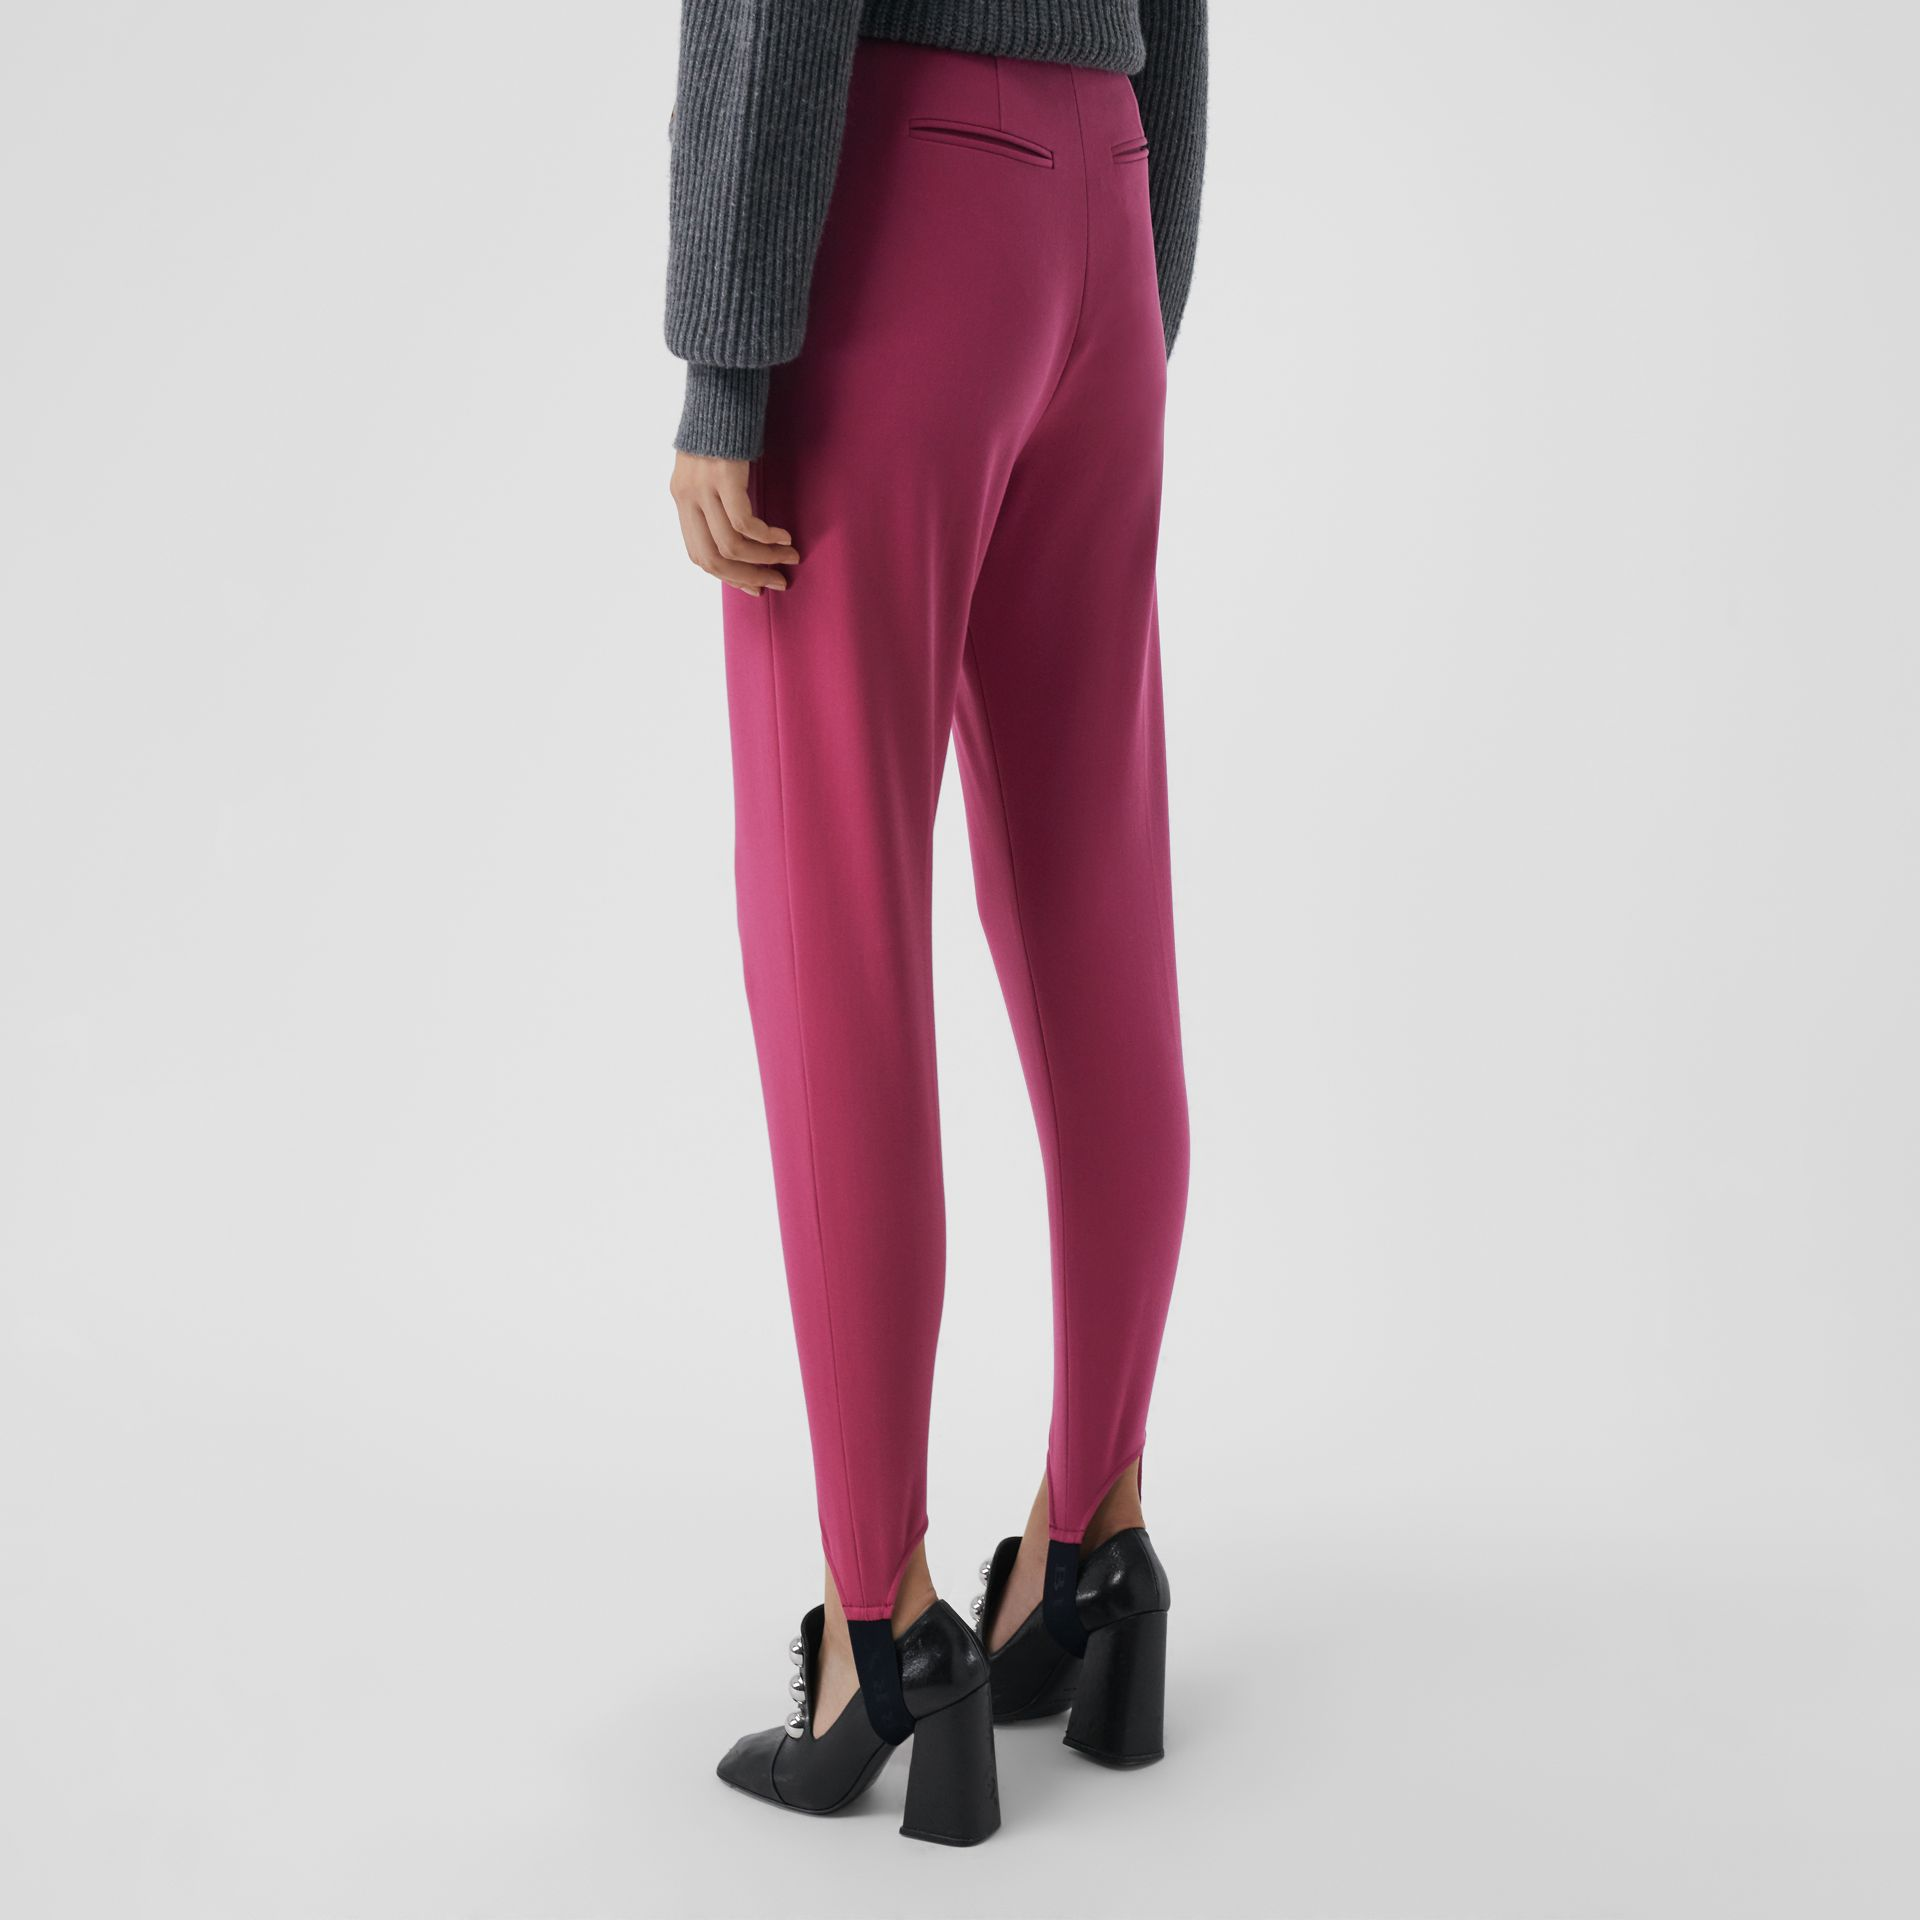 Long Cotton Blend Tailored Jodhpurs in Plum Pink - Women | Burberry United Kingdom - gallery image 2